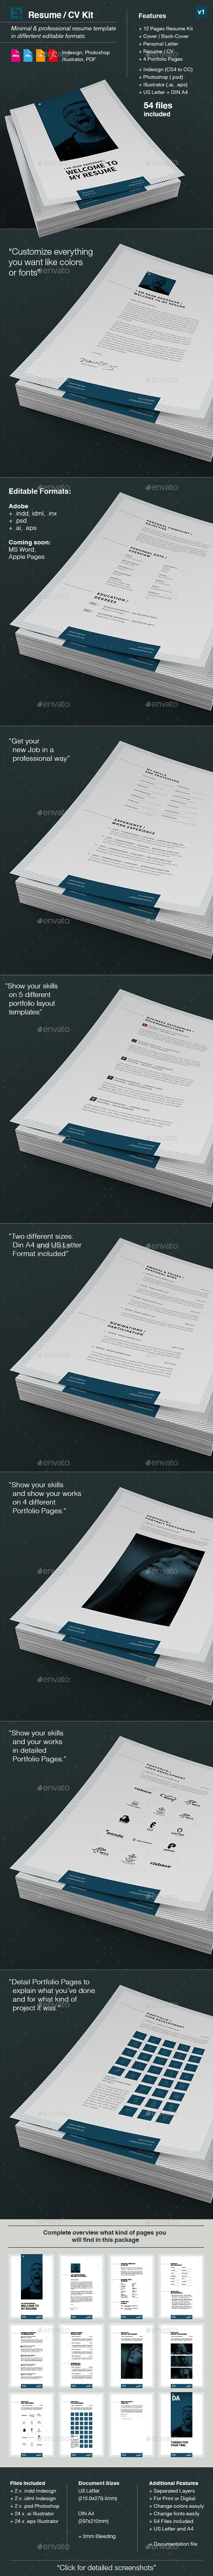 GraphicRiver Minimal Resume and CV 10135729